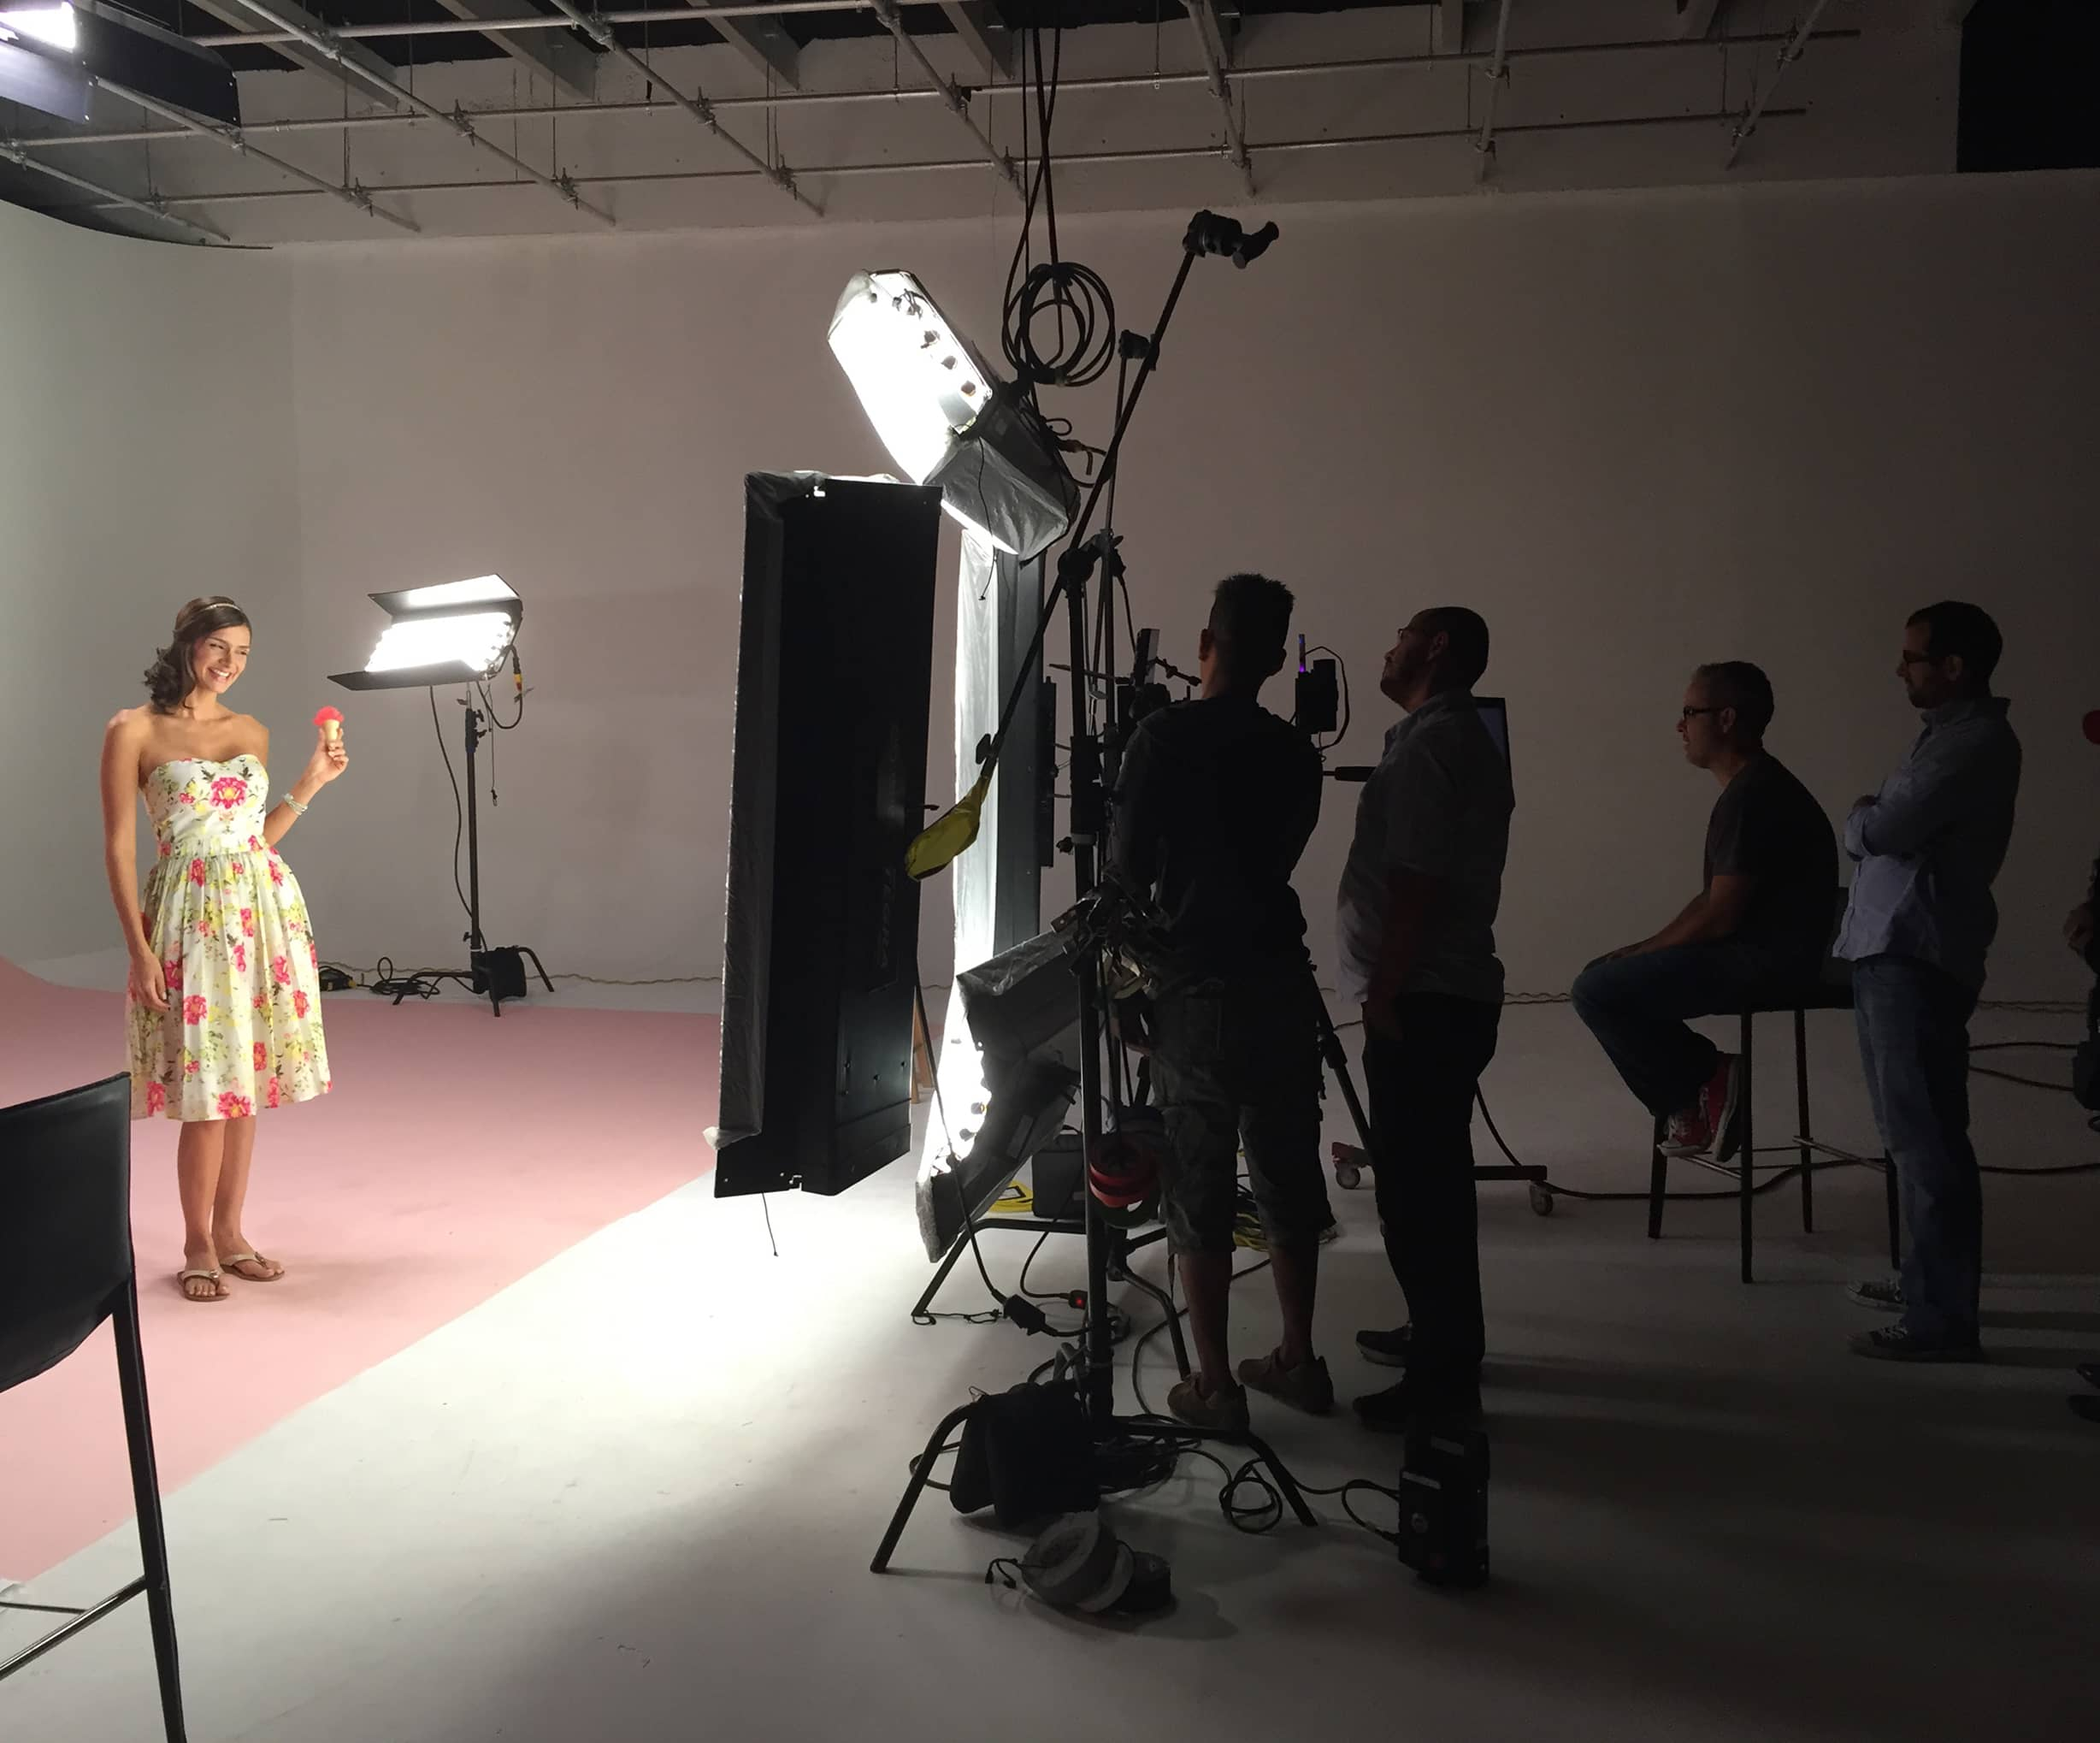 Young girl wearing floral dress and crew members in studio video shooting session